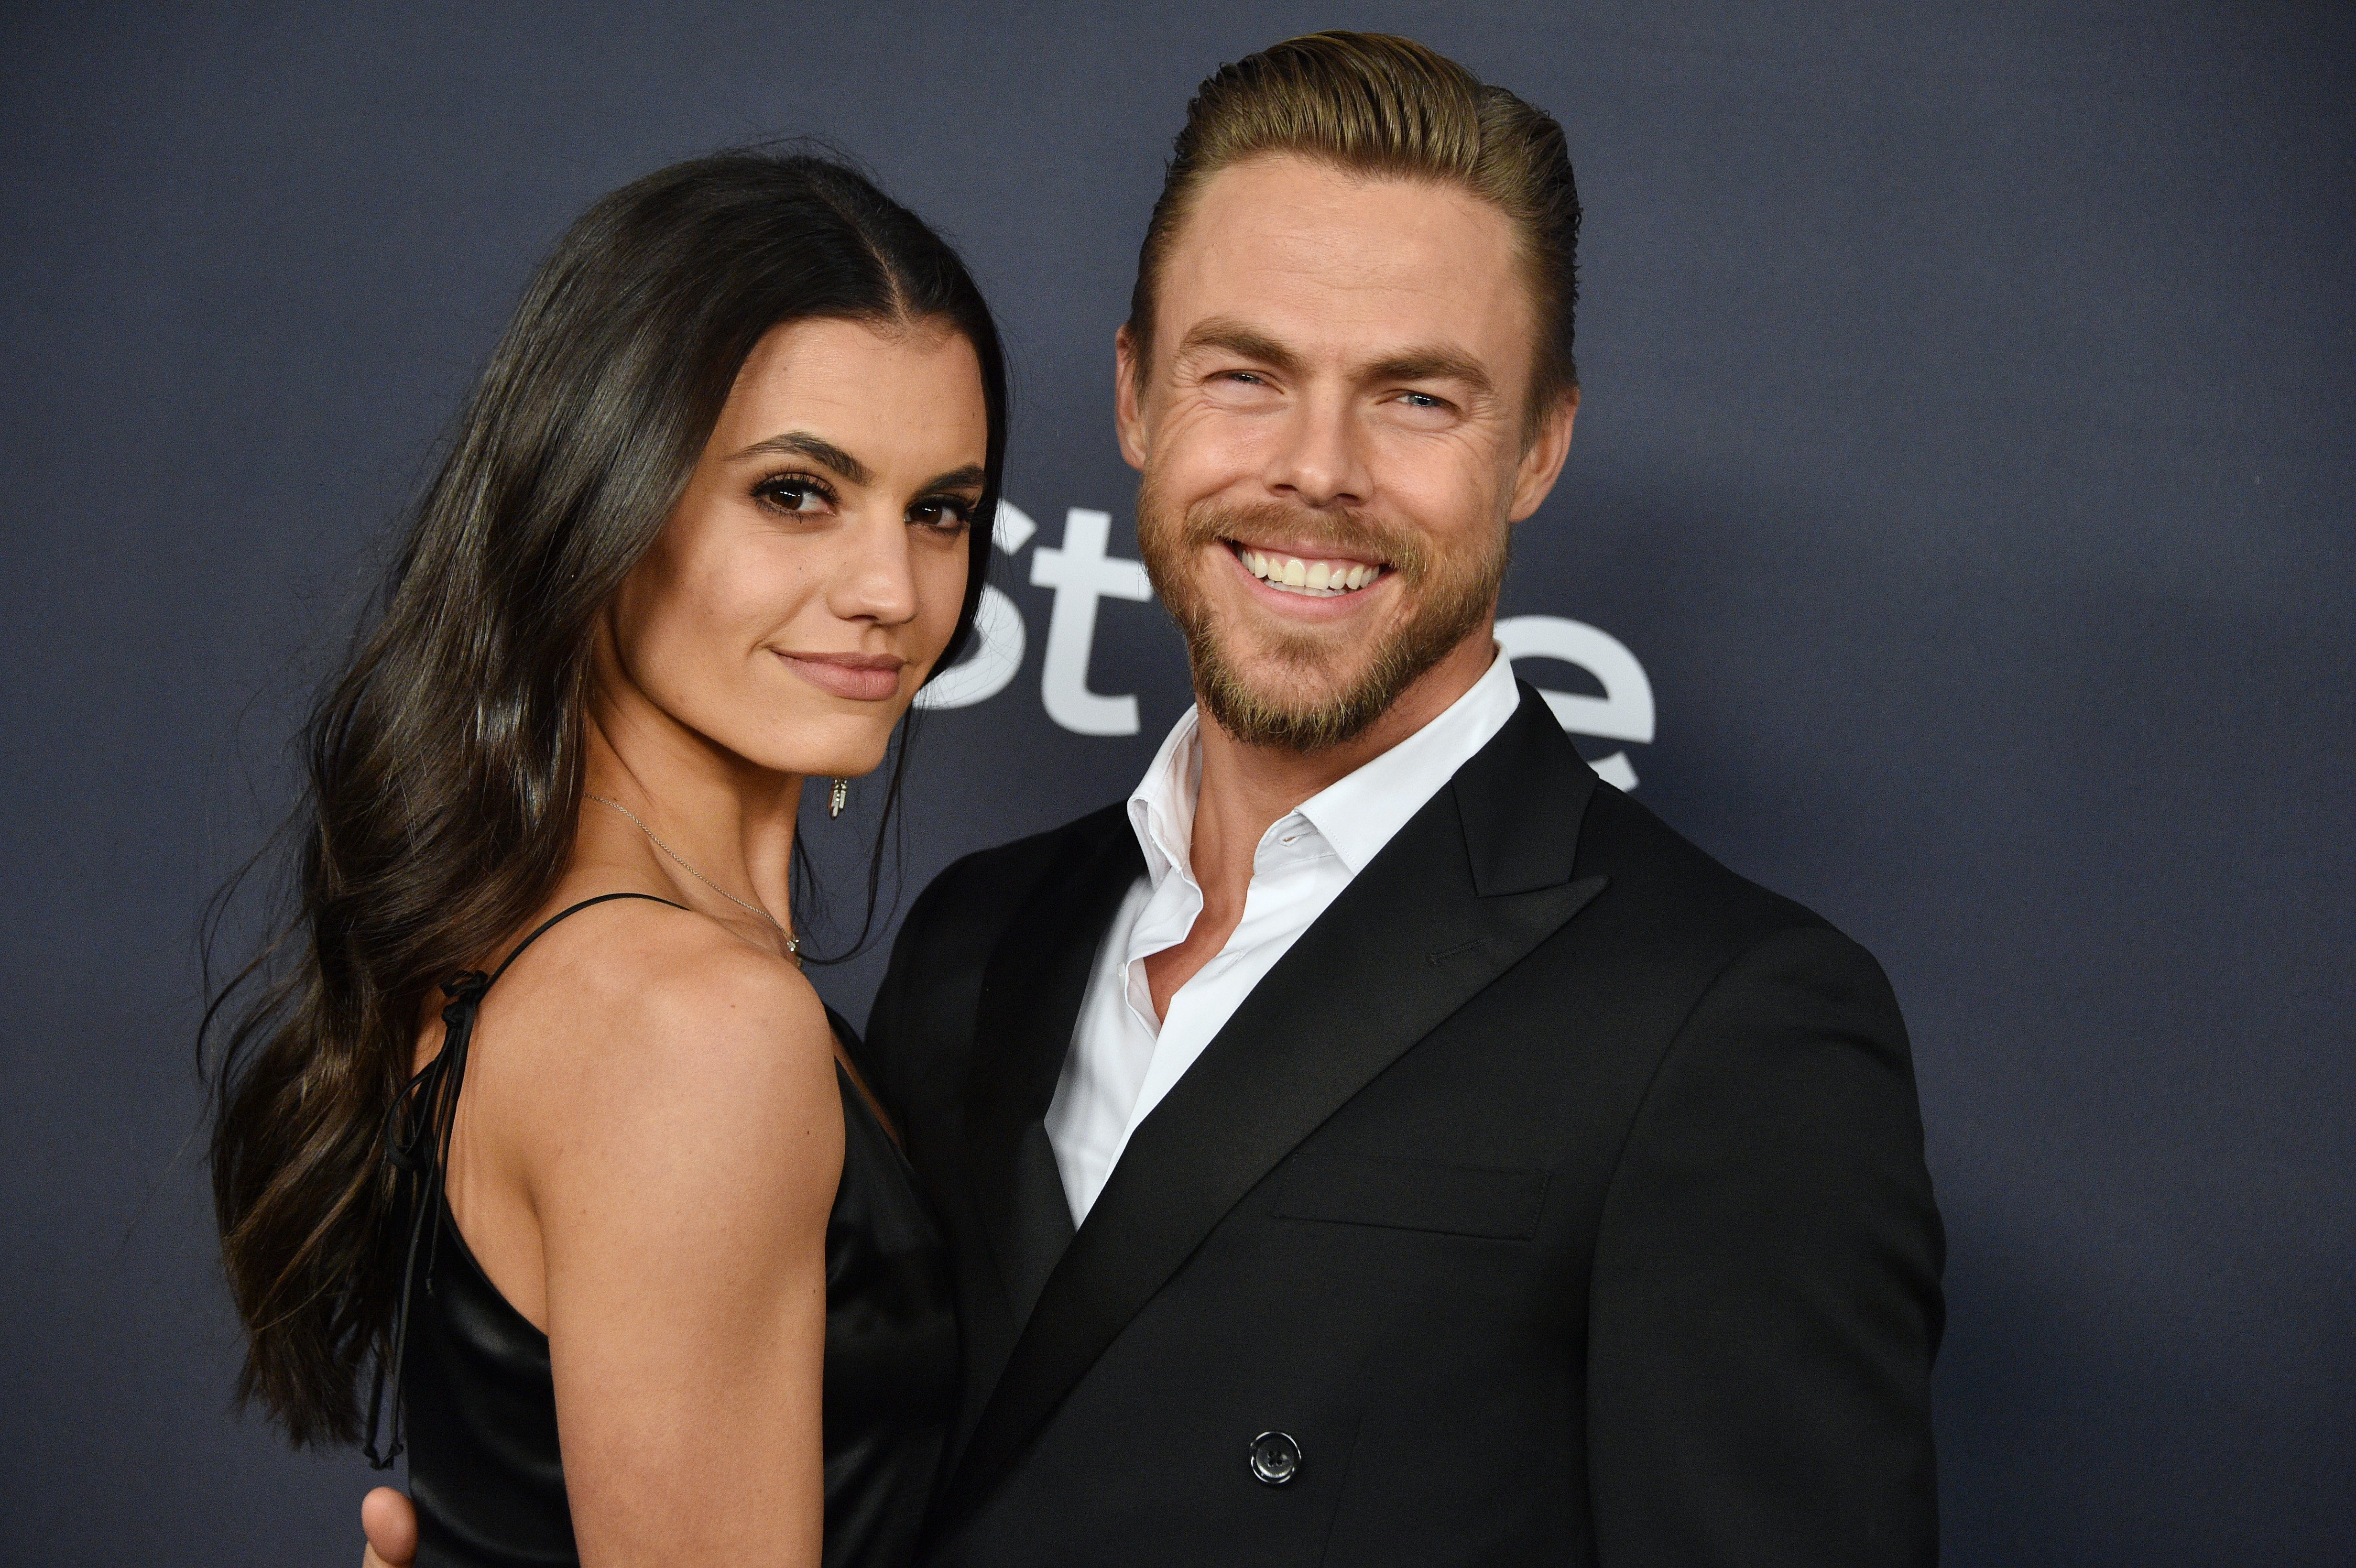 Hayley Erbert and Derek Hough attend the 21st Annual Warner Bros. And InStyle Golden Globe After Party on January 05, 2020, in Beverly Hills, California. | Source: Getty Images.